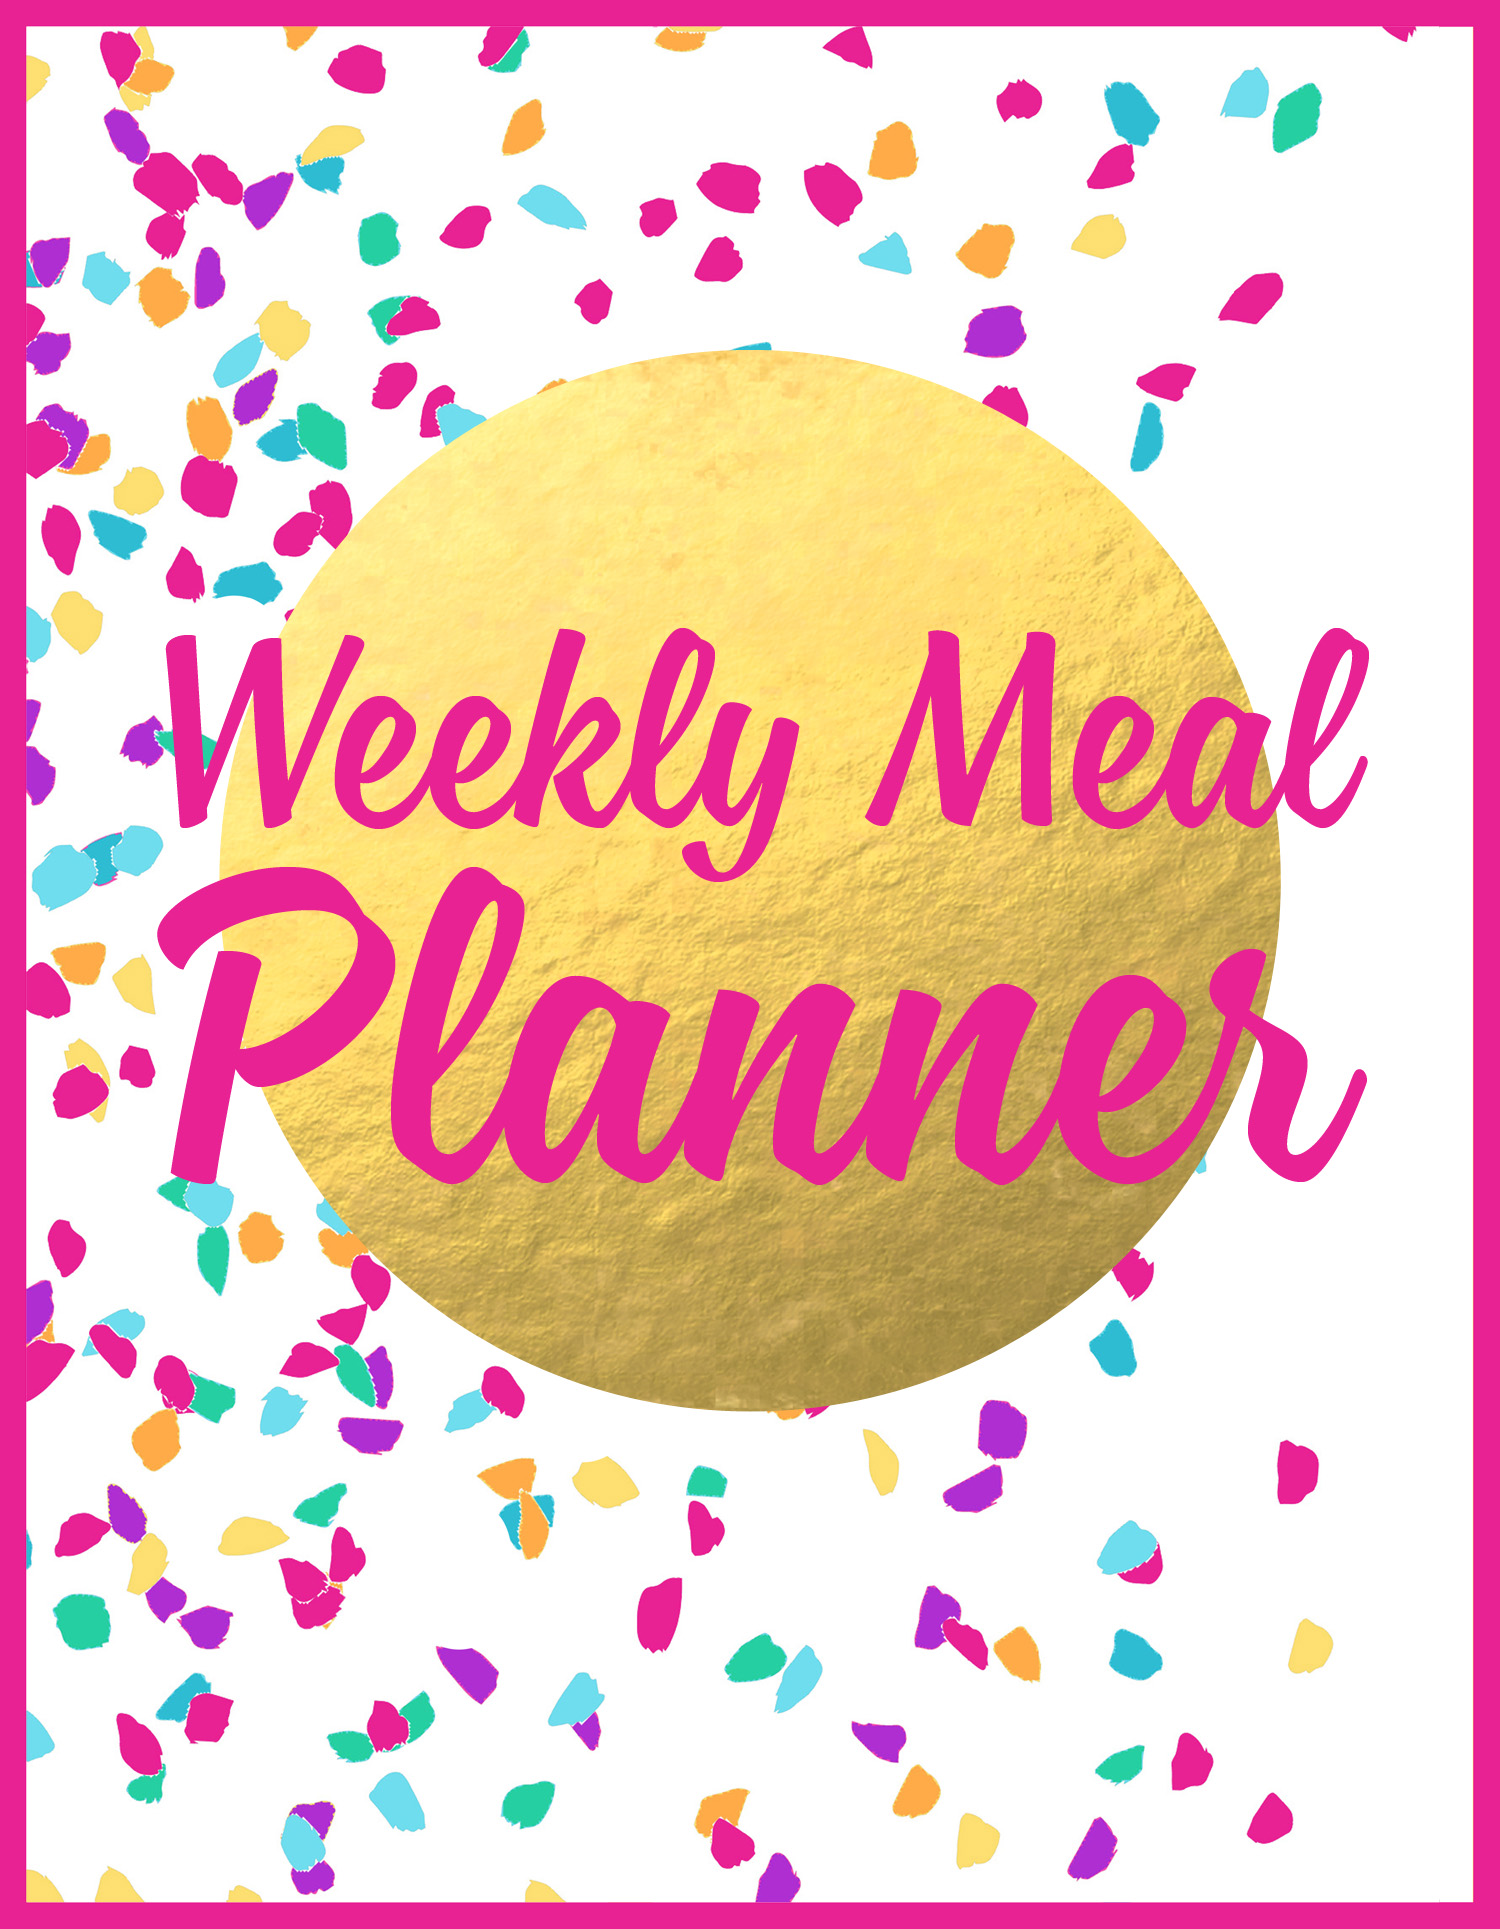 Julia Jackson - Weekly Meal Planner